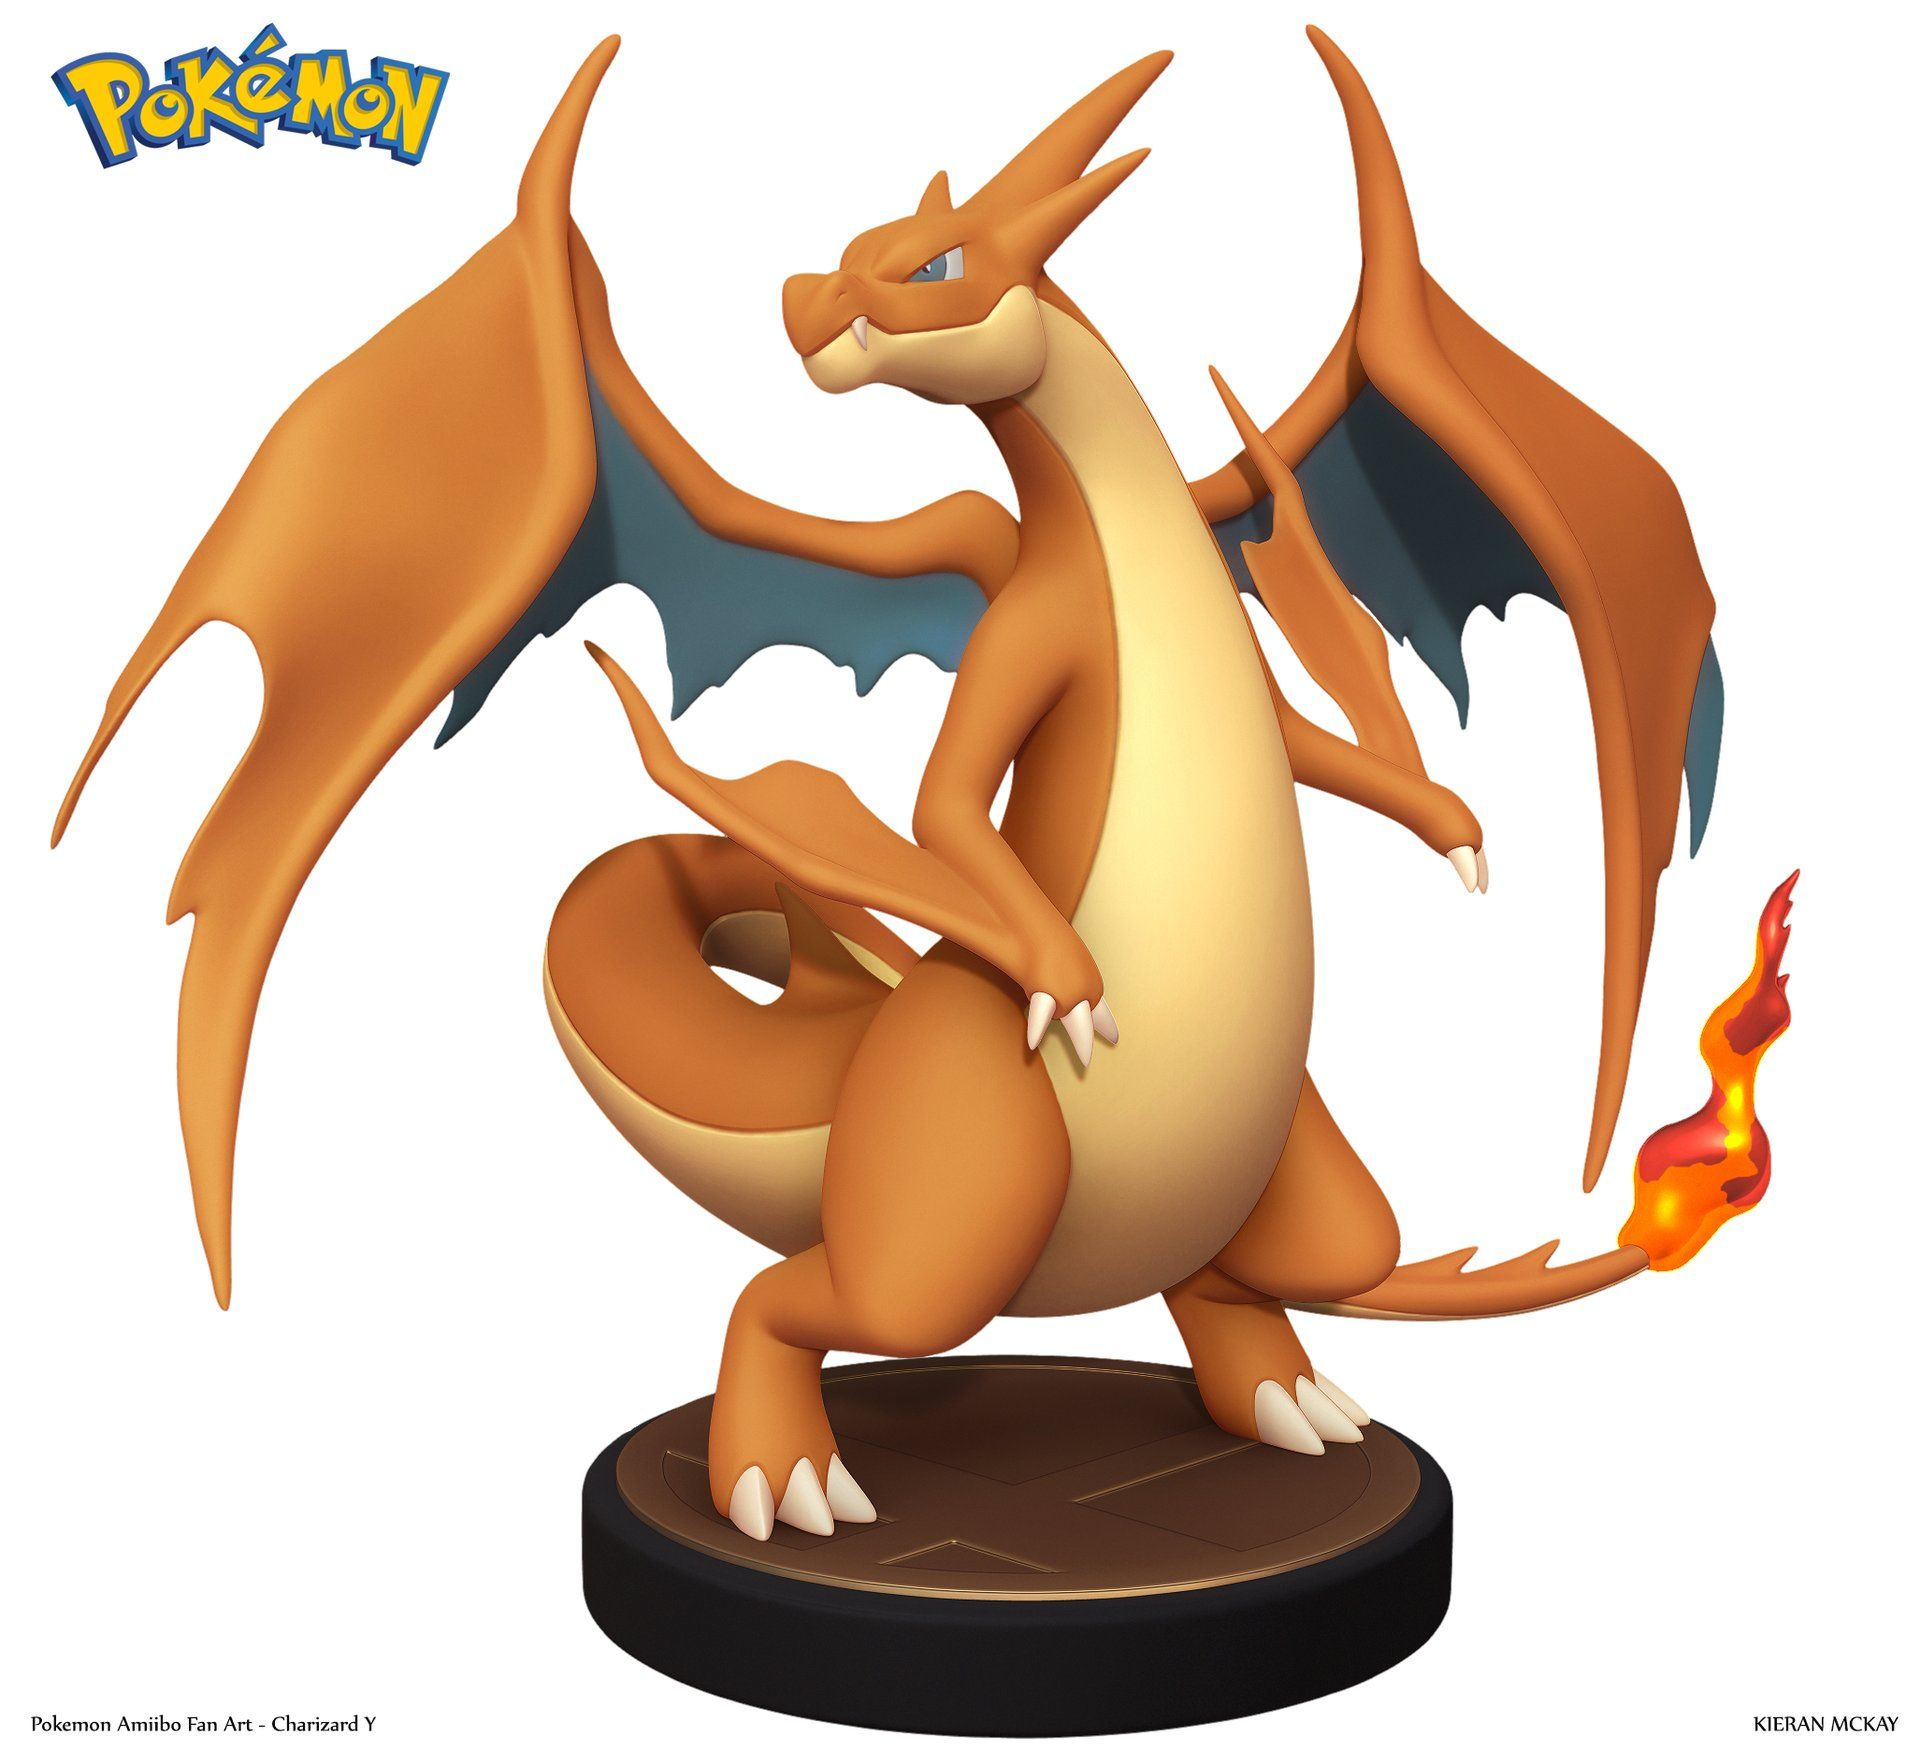 ArtStation - Pokemon Charizard Y Amiibo - Fan Art, Kieran McKay